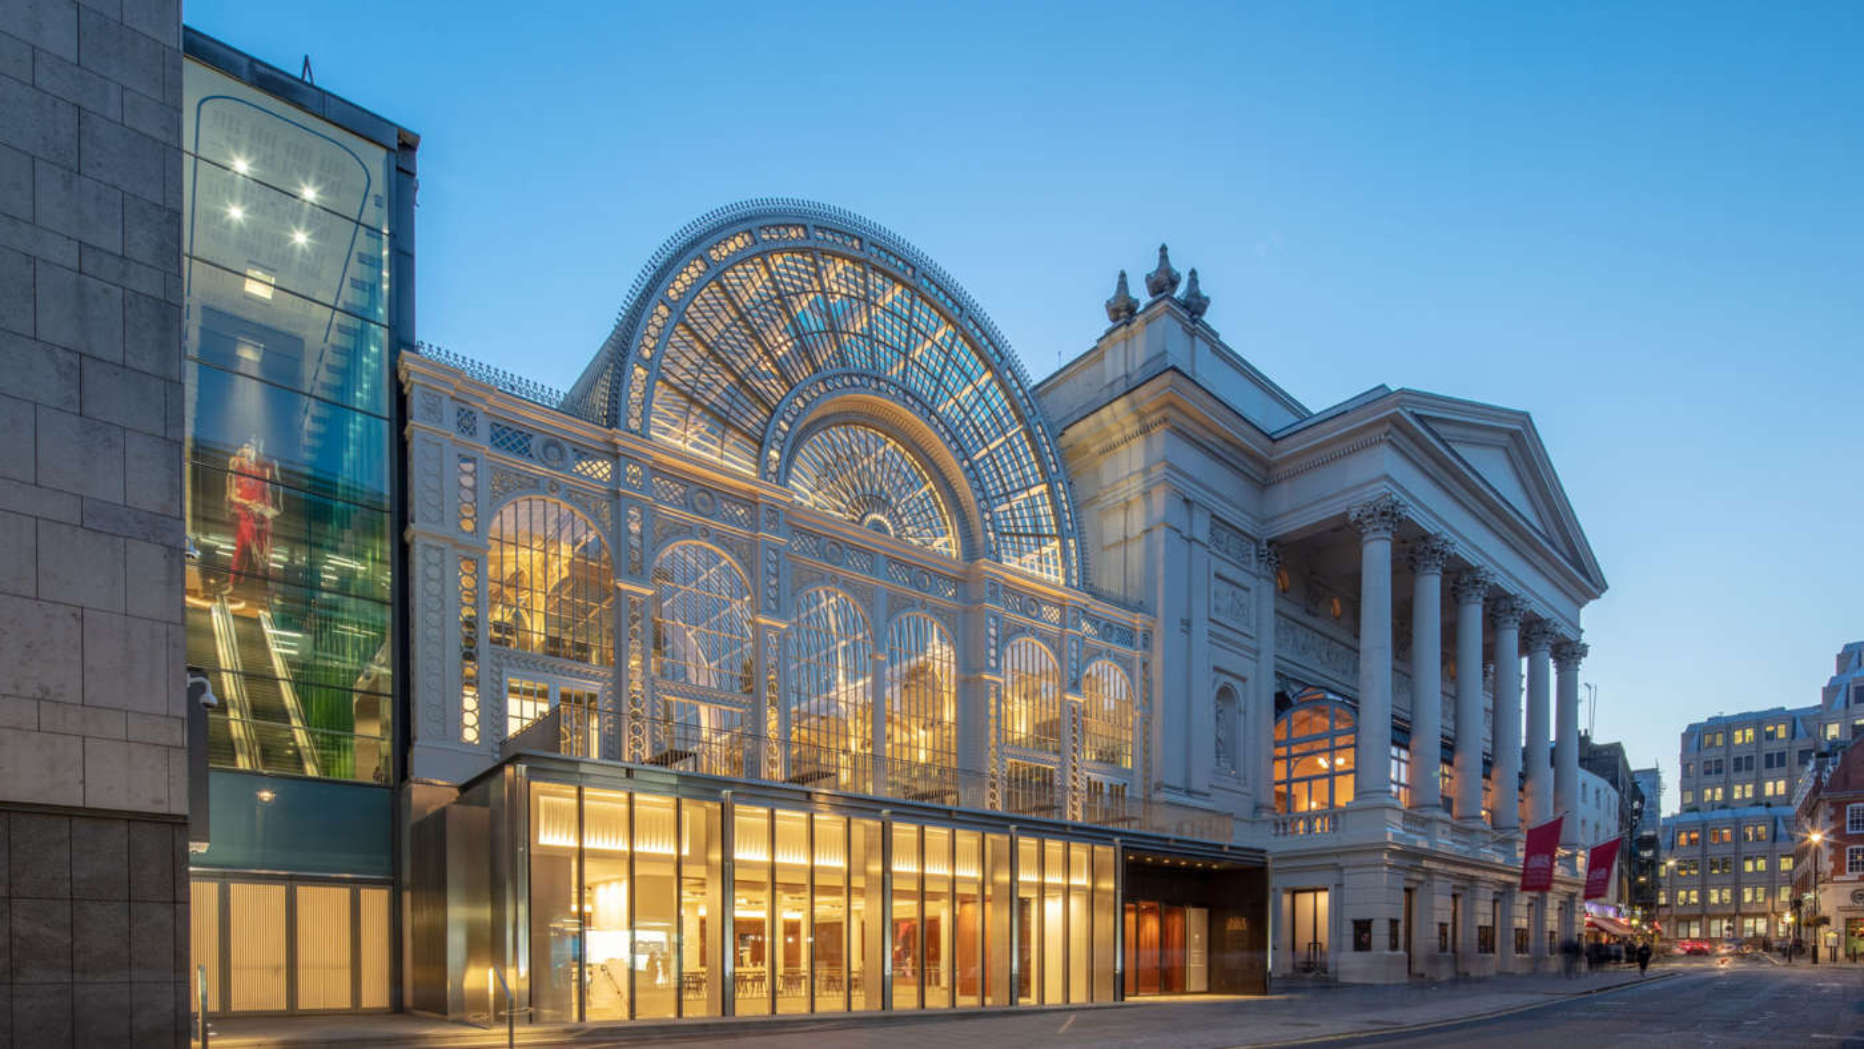 ROYAL OPERA HOUSE 2019/20